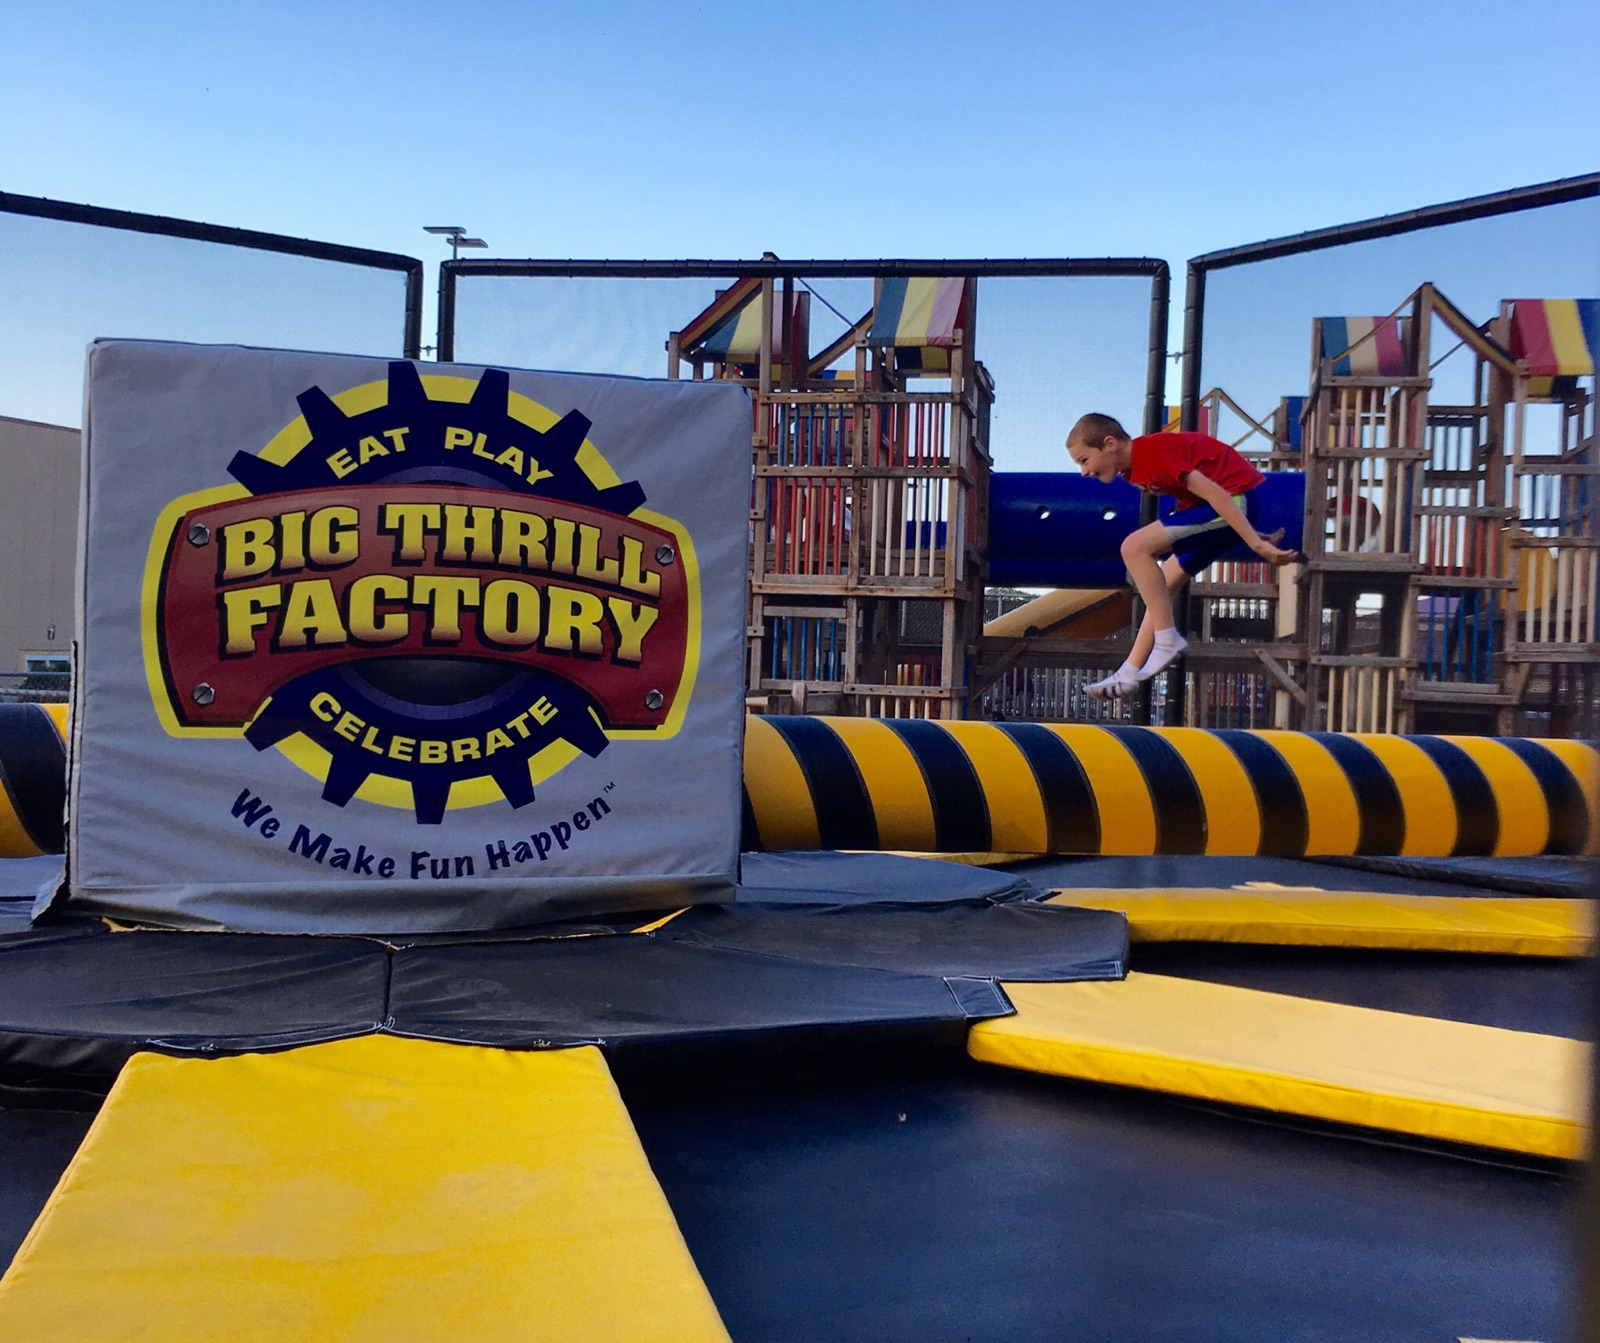 Image of people on the wipeout trampolines and axe throwing at Big Thrill Factory amusement park